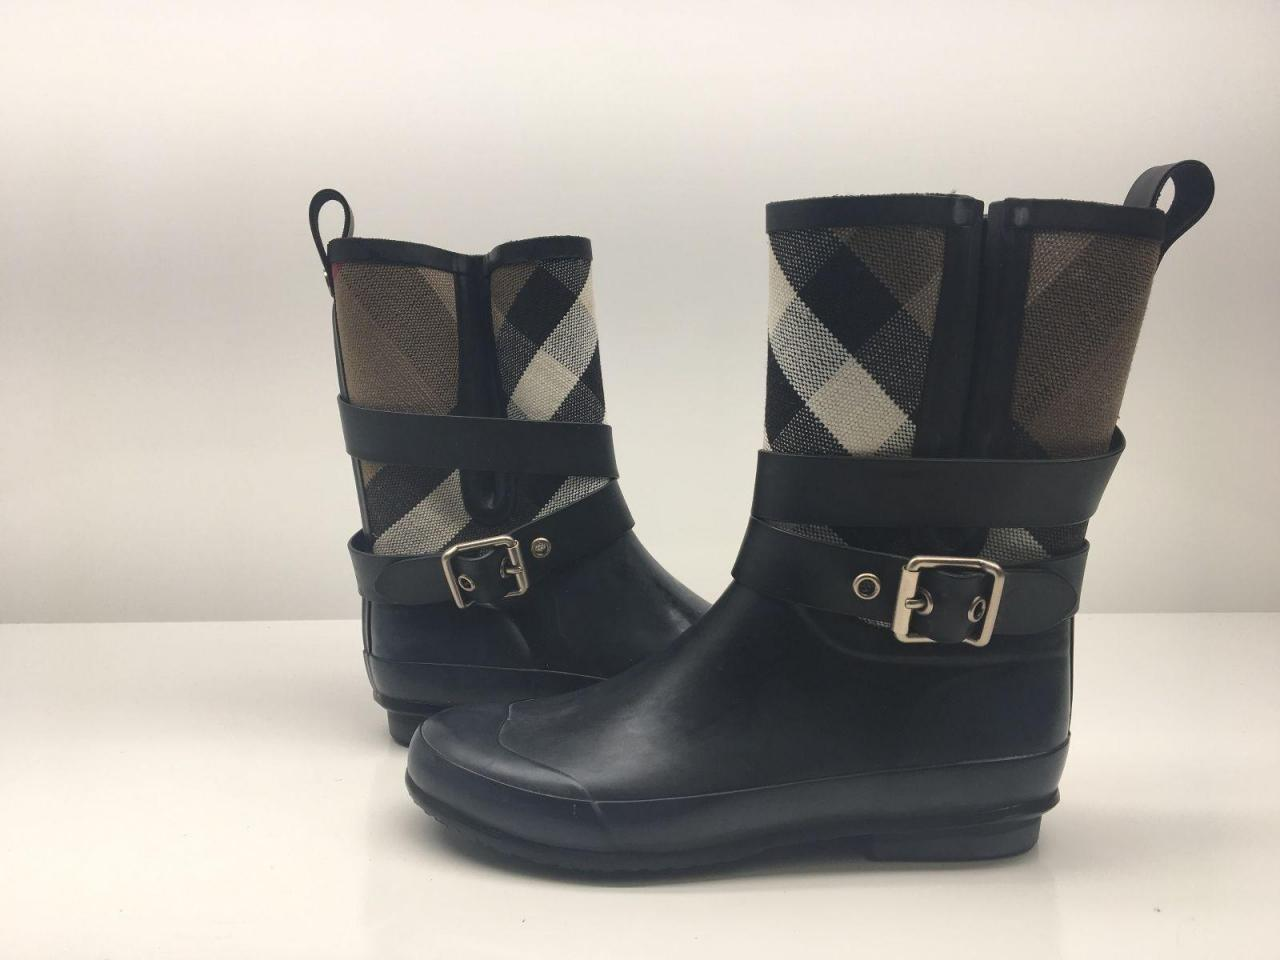 55e0443eccd Burberry Black  holloway  Rain Boots Booties - Best Replica Shoes ...